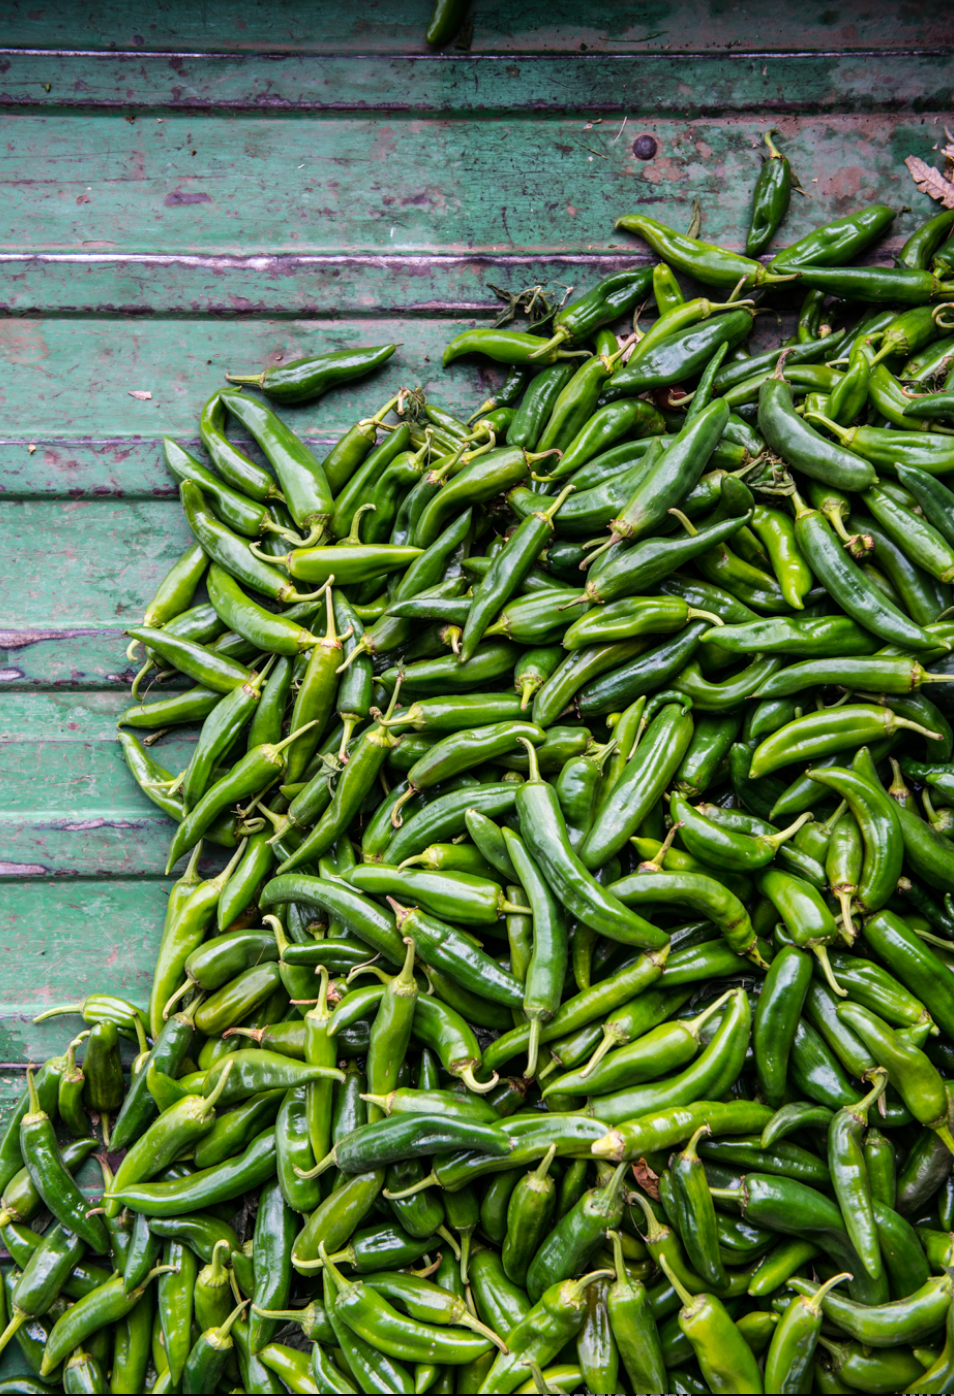 Little green chili peppers